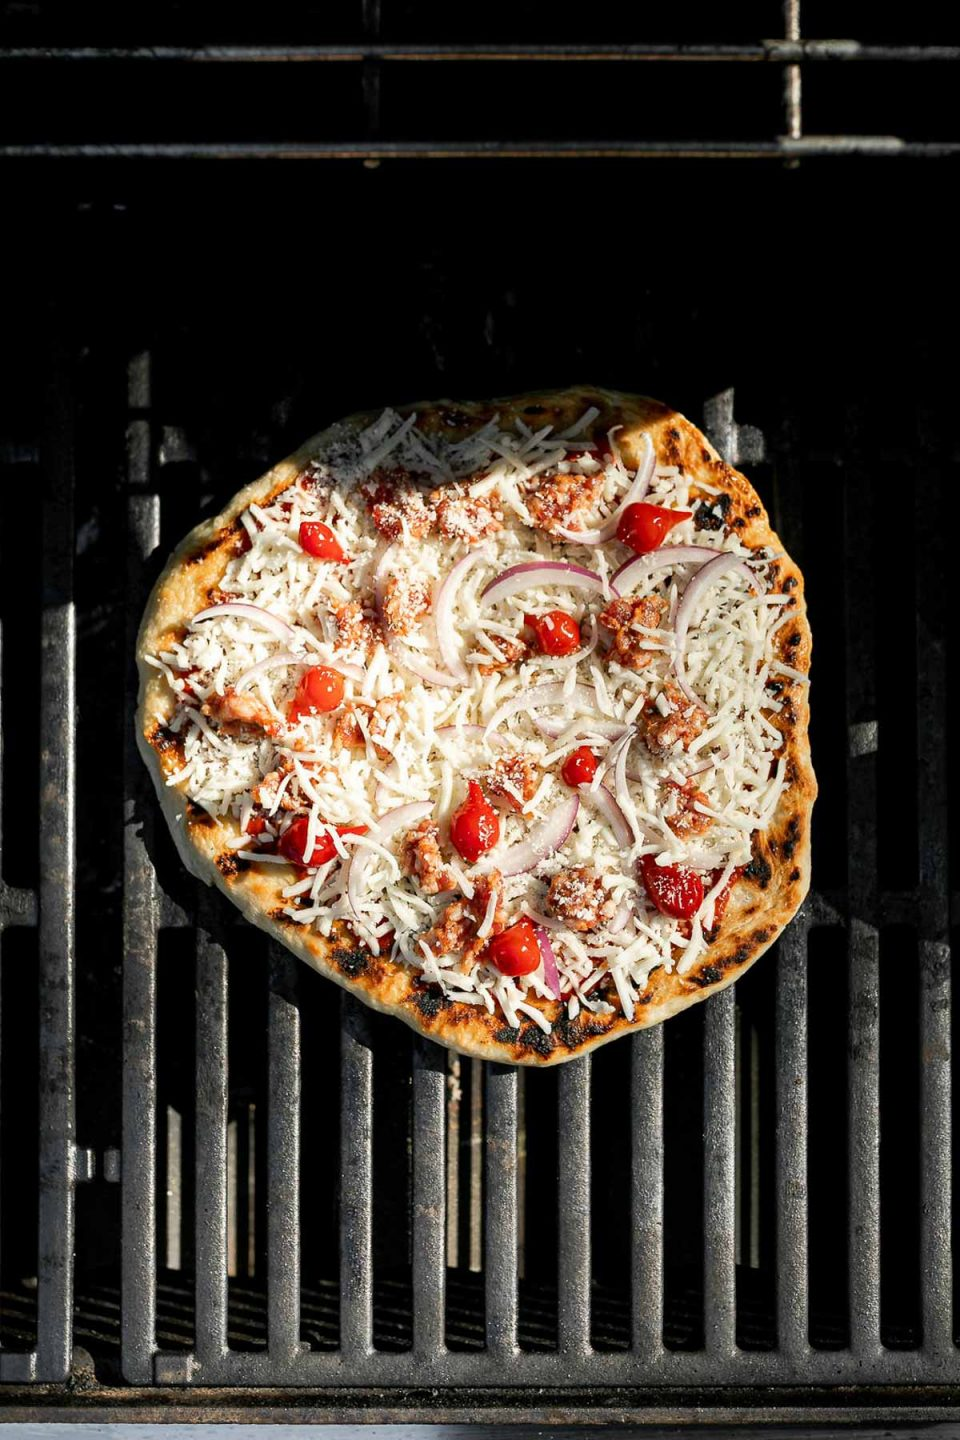 Assembled pizza shown on grill grates over direct heat.